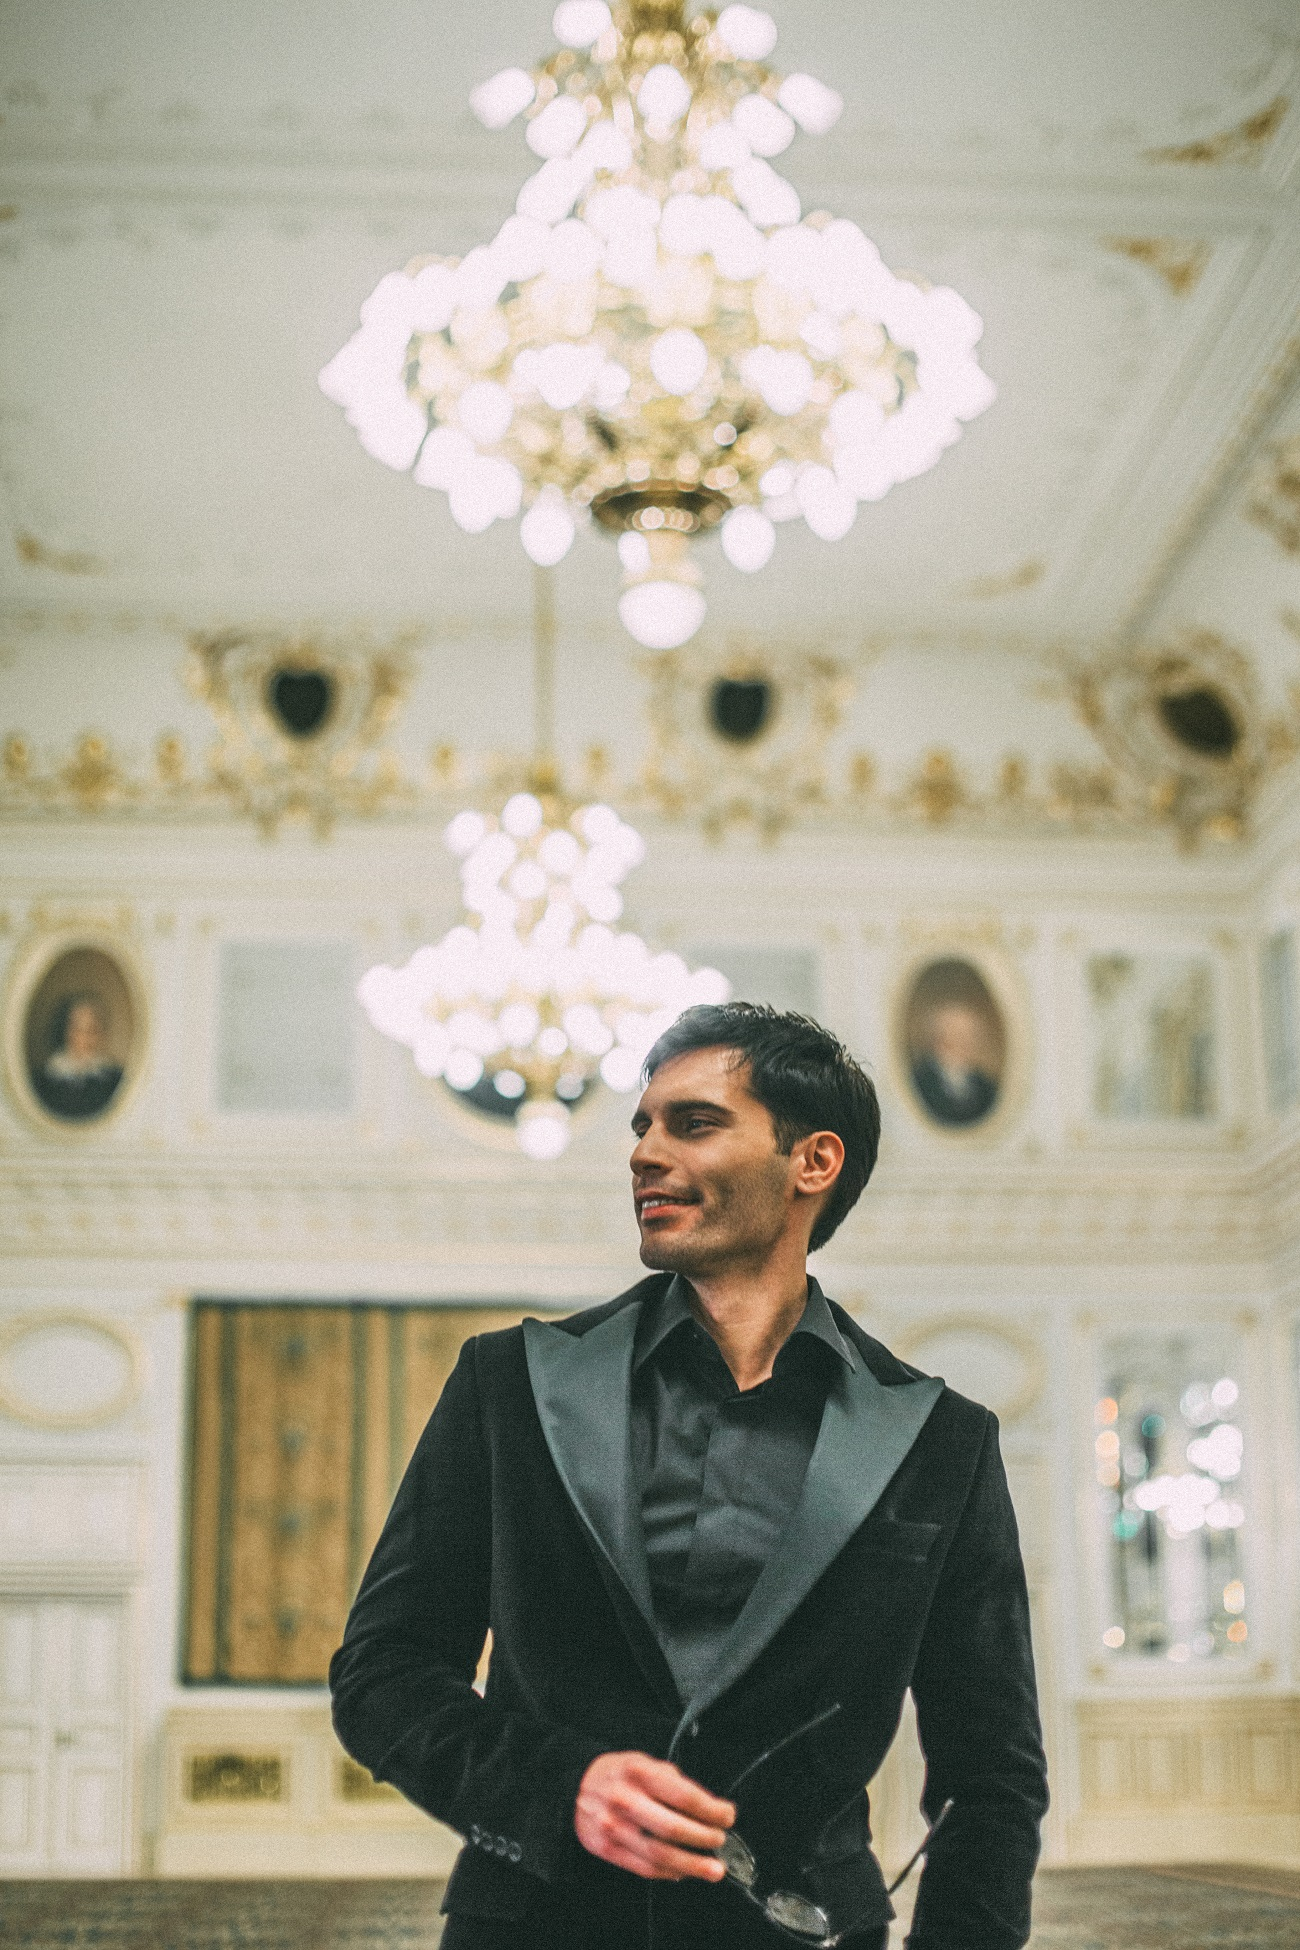 Vukota Brajovic by Marko Arsic at Corinthia Hotel Budapest 2